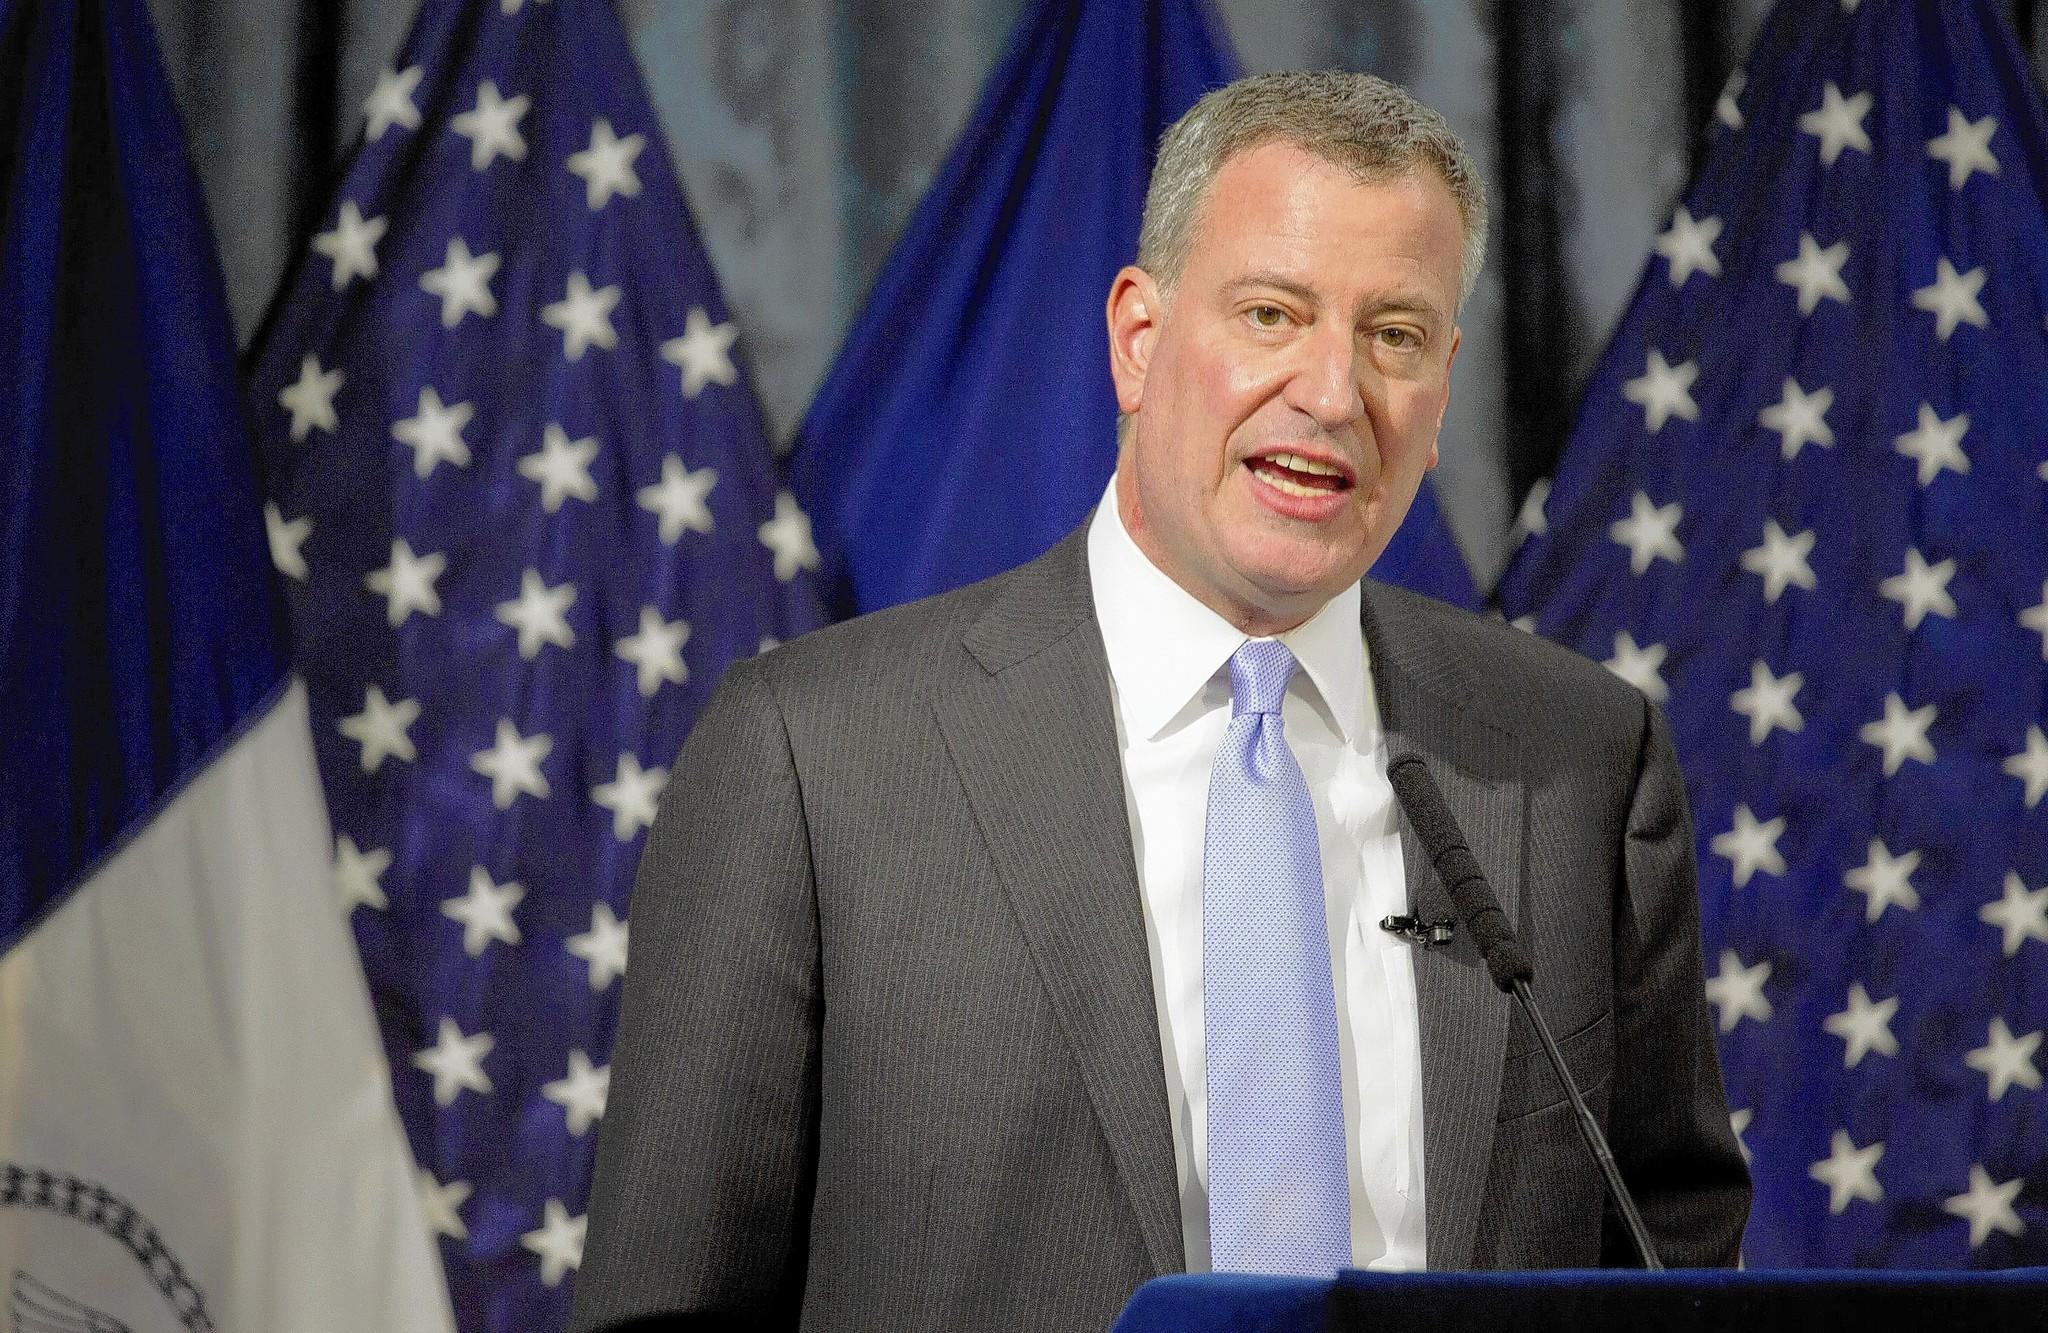 New York Mayor Bill de Blasio is one of several progressive Democrats who could steer the party further to the left.